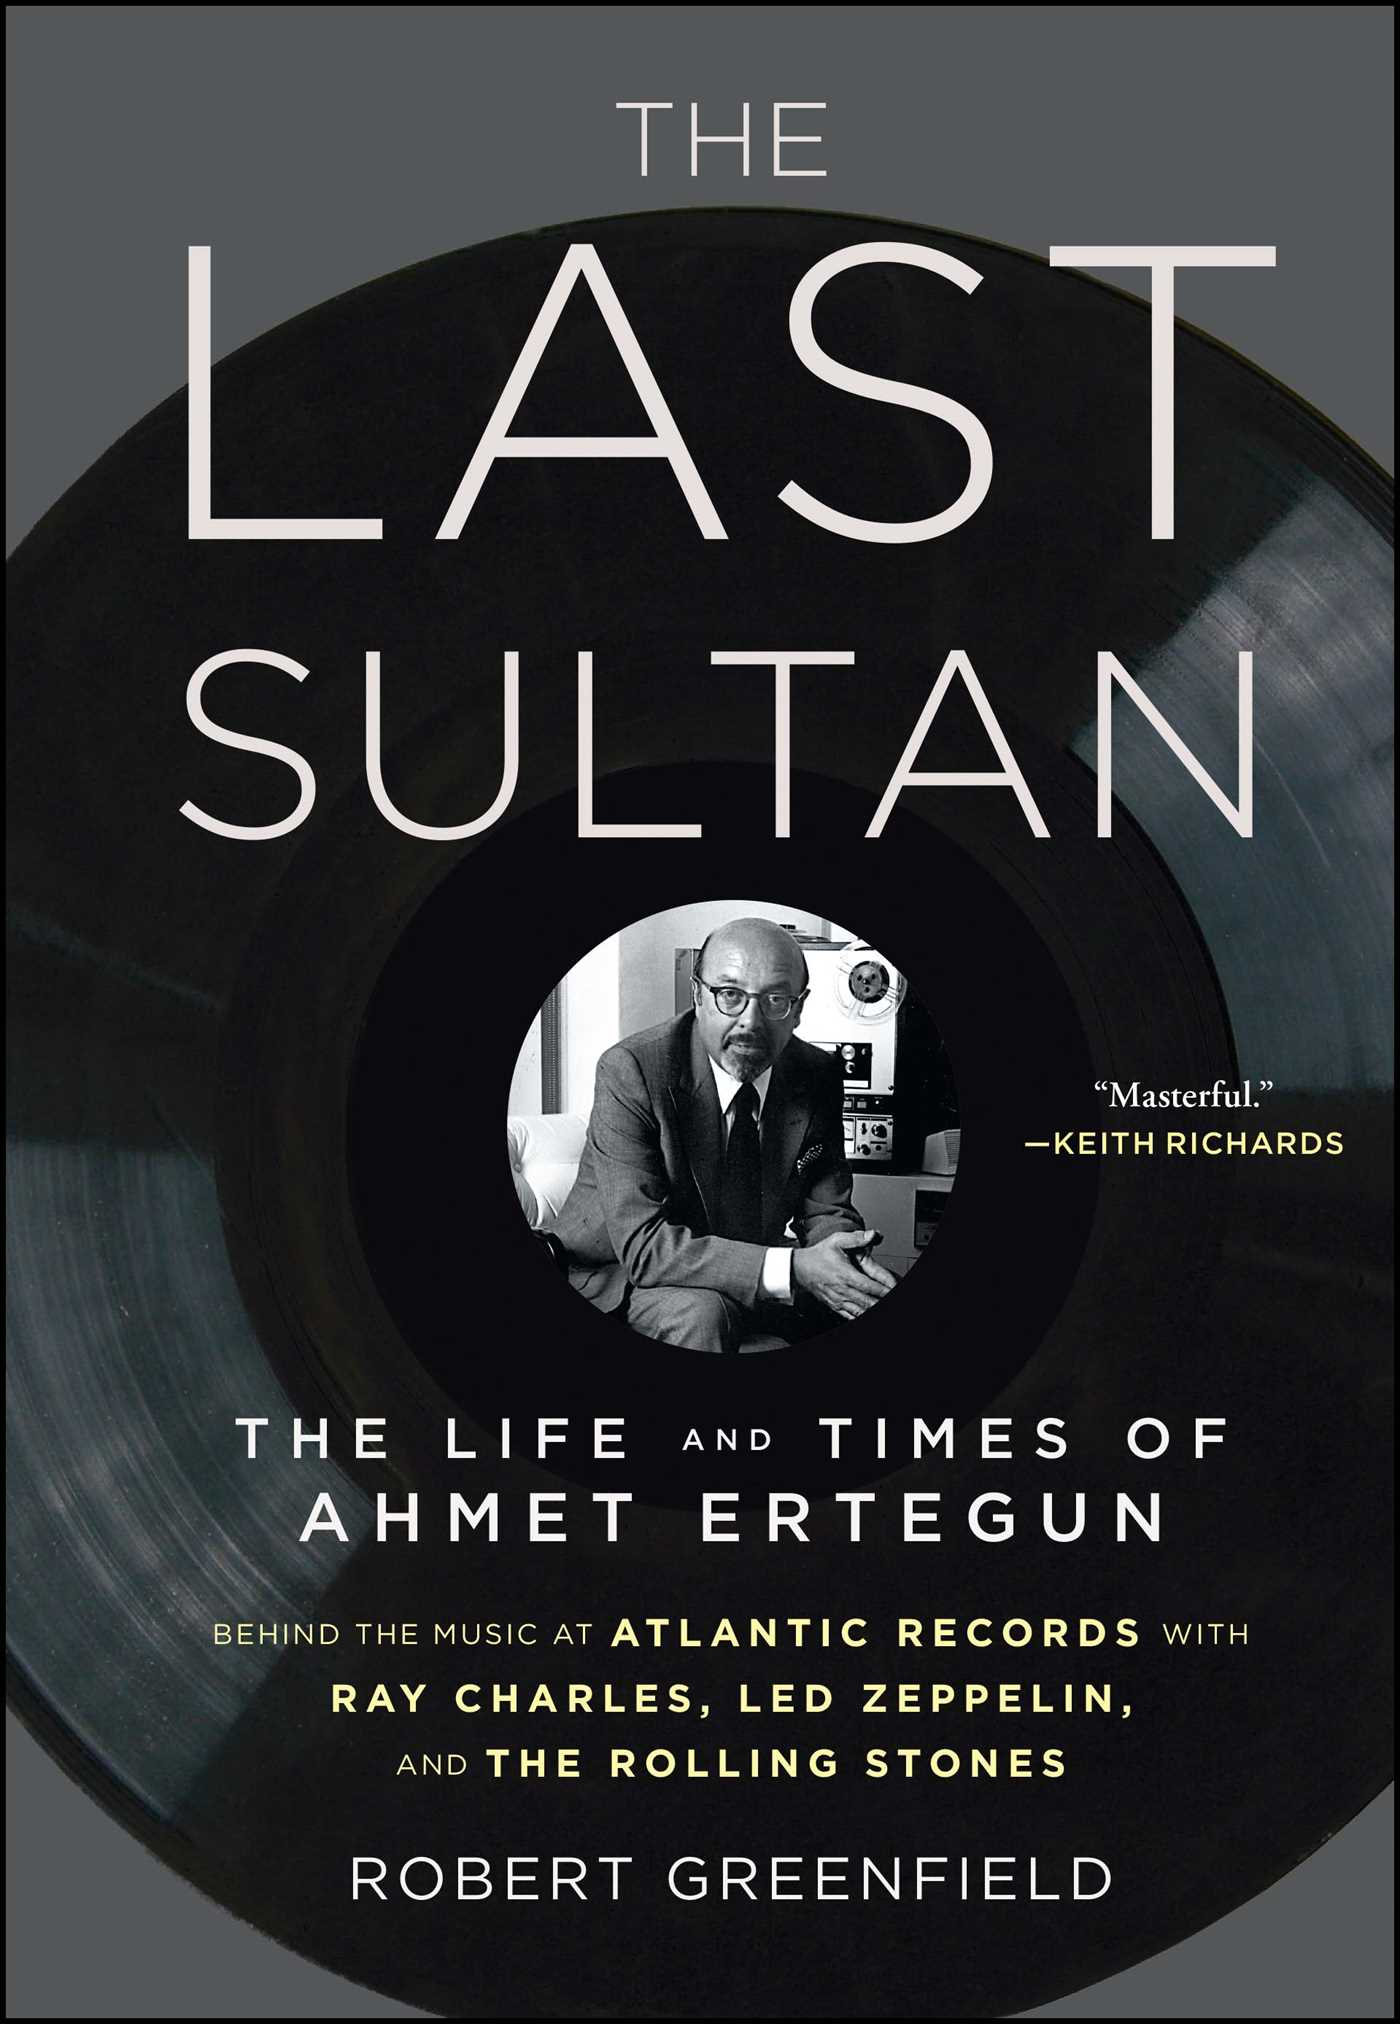 The last sultan 9781439198629 hr